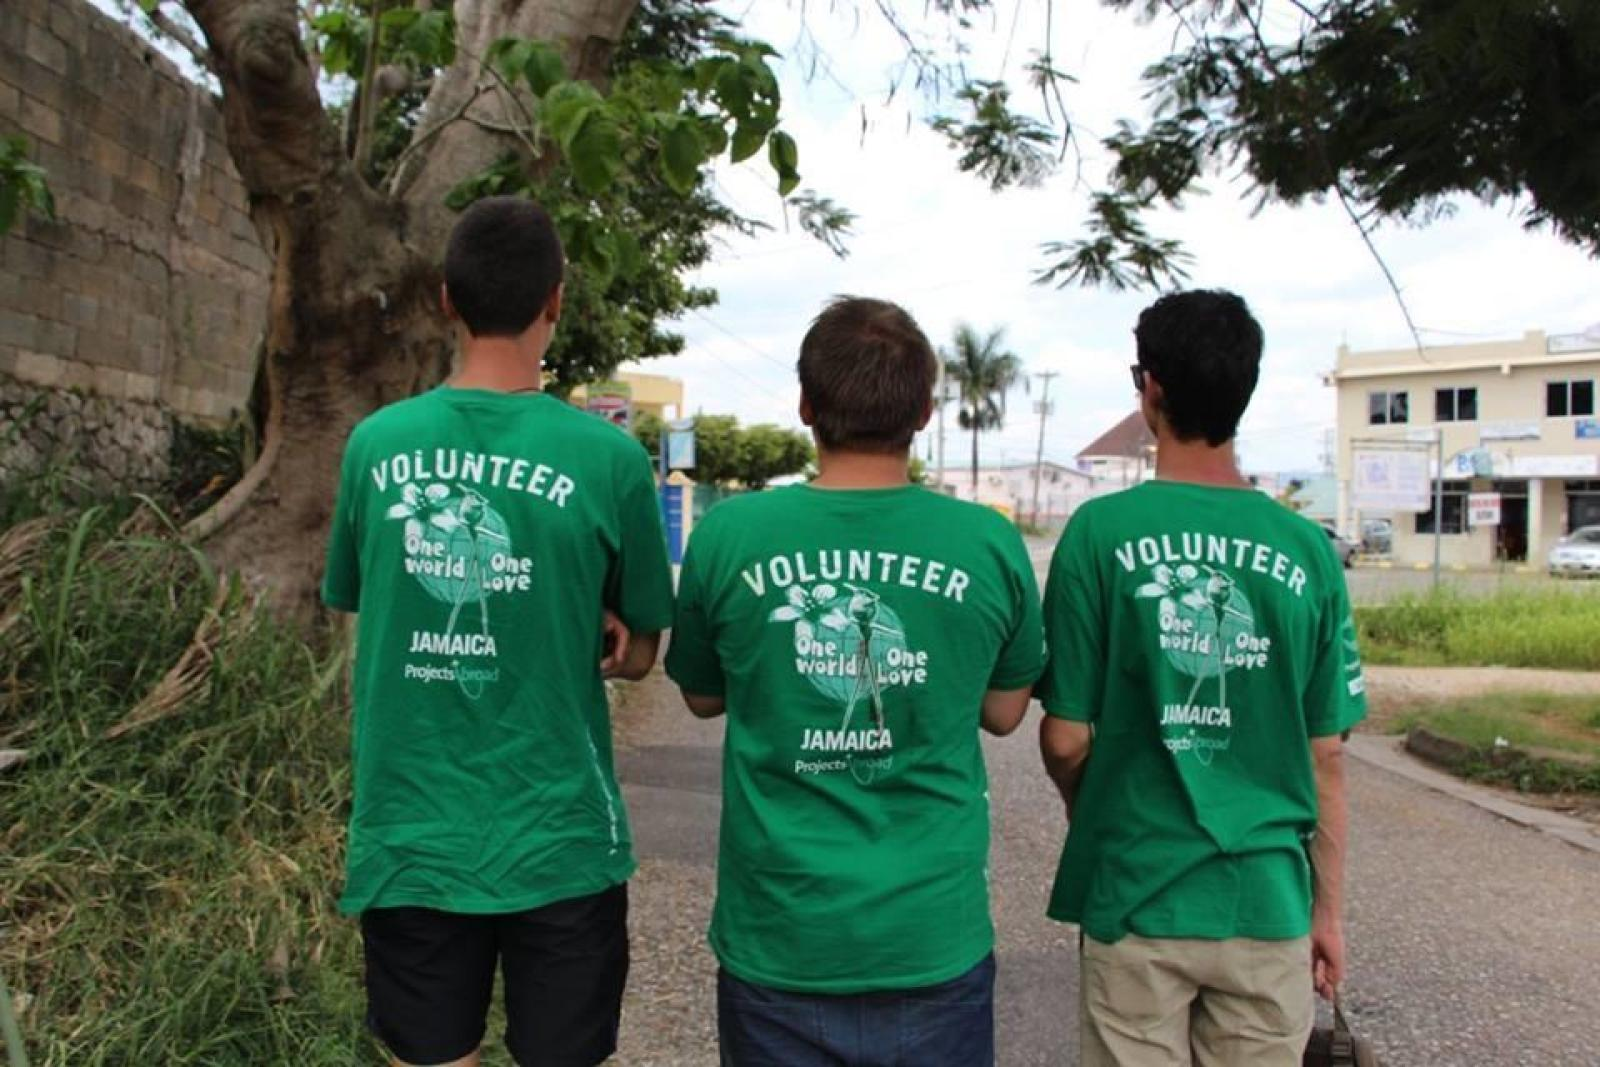 Volunteers walk the streets of Mandeville during their English language course in Jamaica